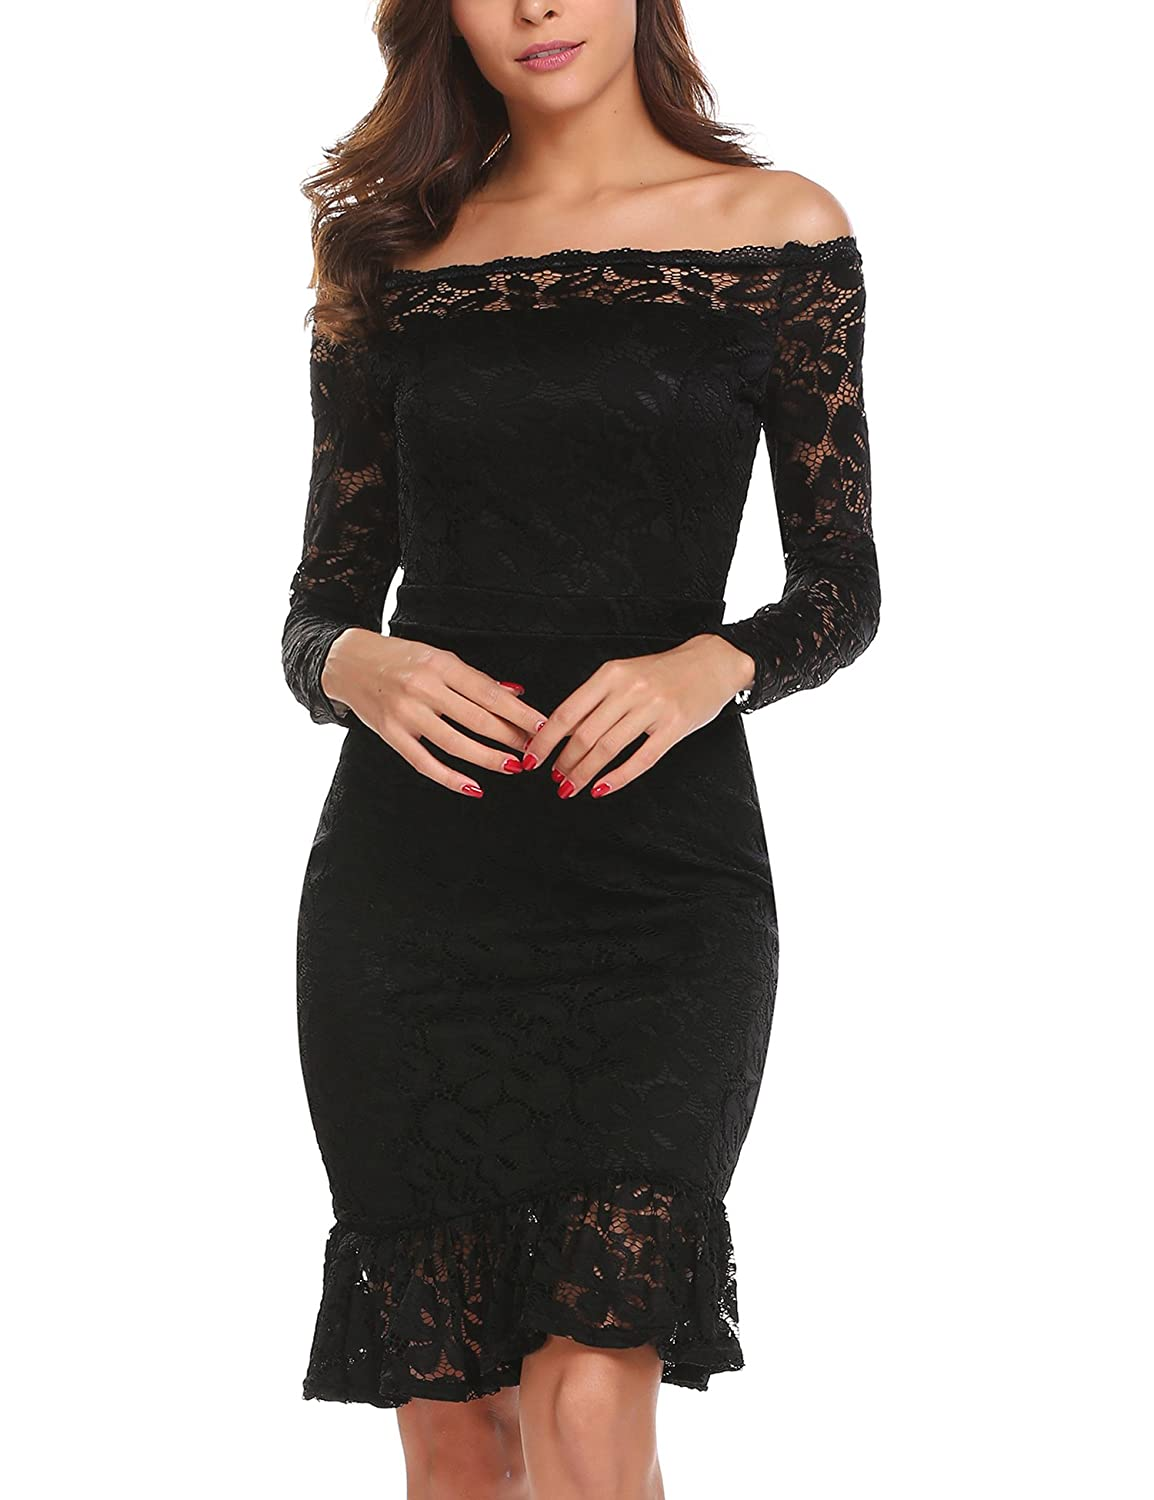 b305fe31f353 Feature: long sleeve, off the shoulder, mermaid bottom, create a sexy  charming body curve. Material: high quality silky paddy lace, ...